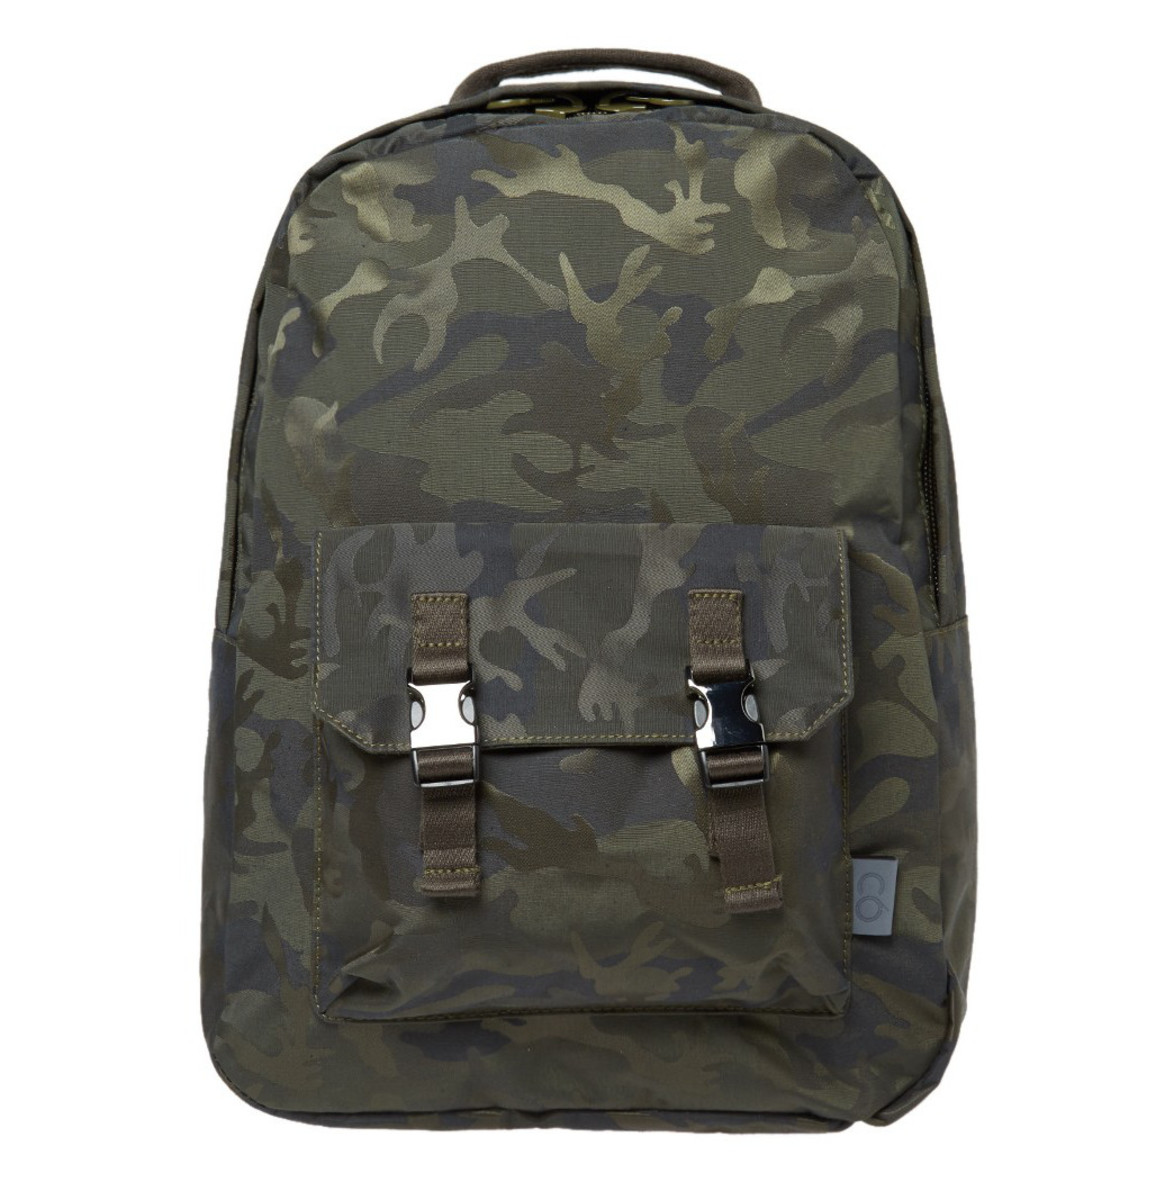 c6-amino-backpack.jpg